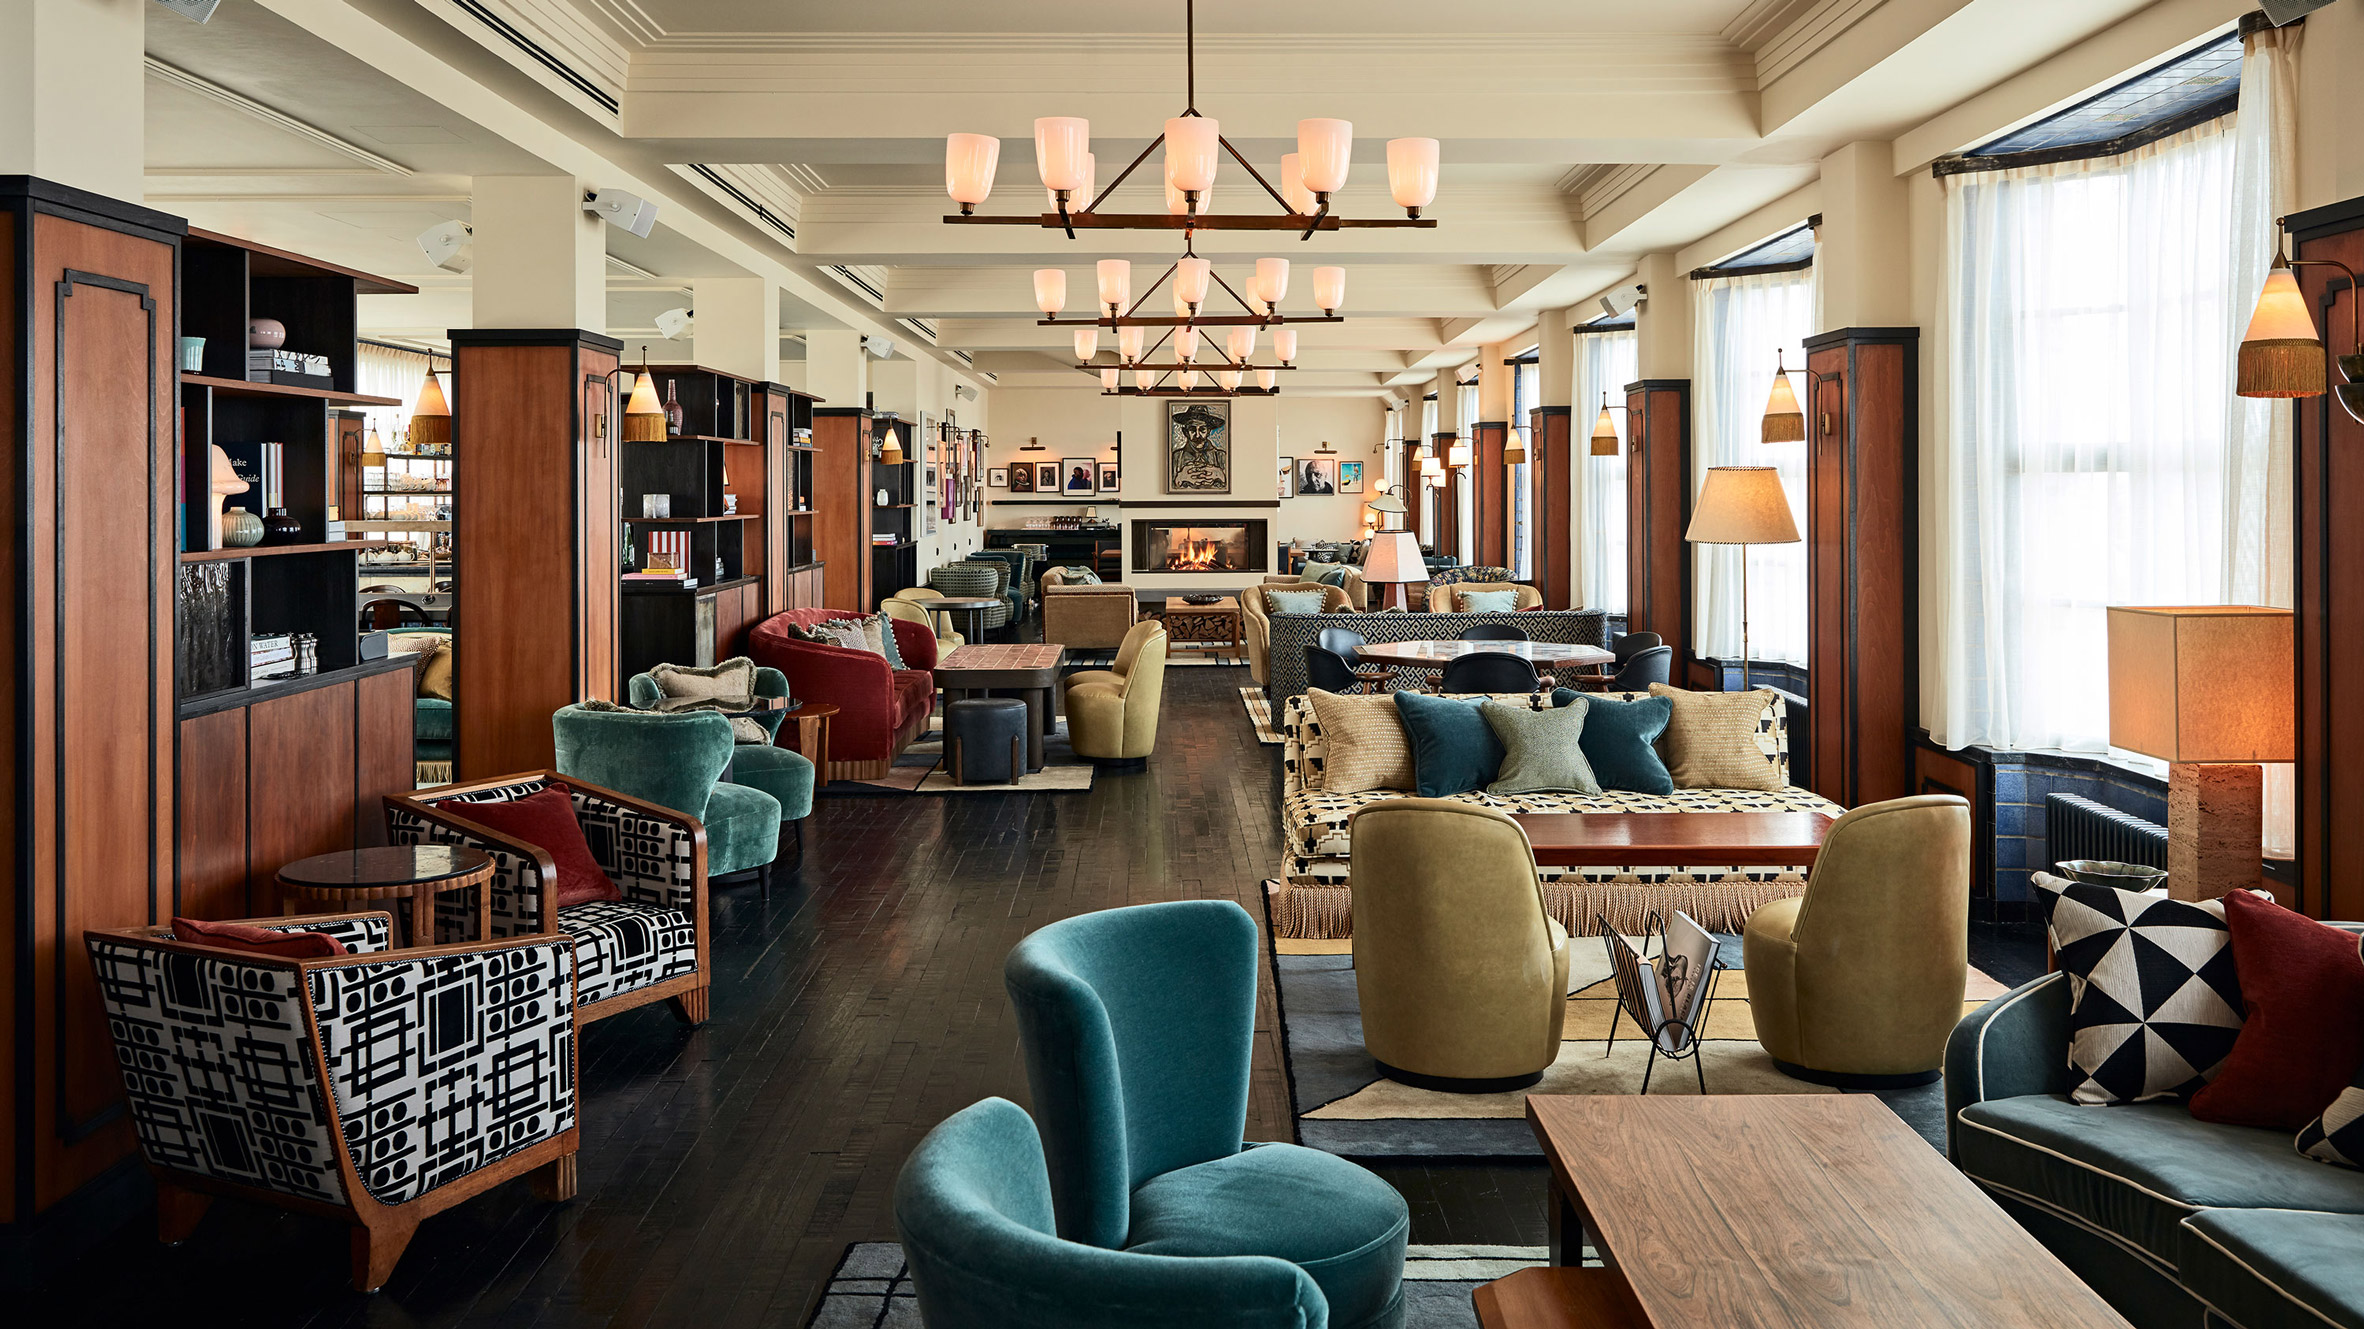 Amsterdam Interior Soho House Opens In Amsterdam With A Colour Palette Drawn From The